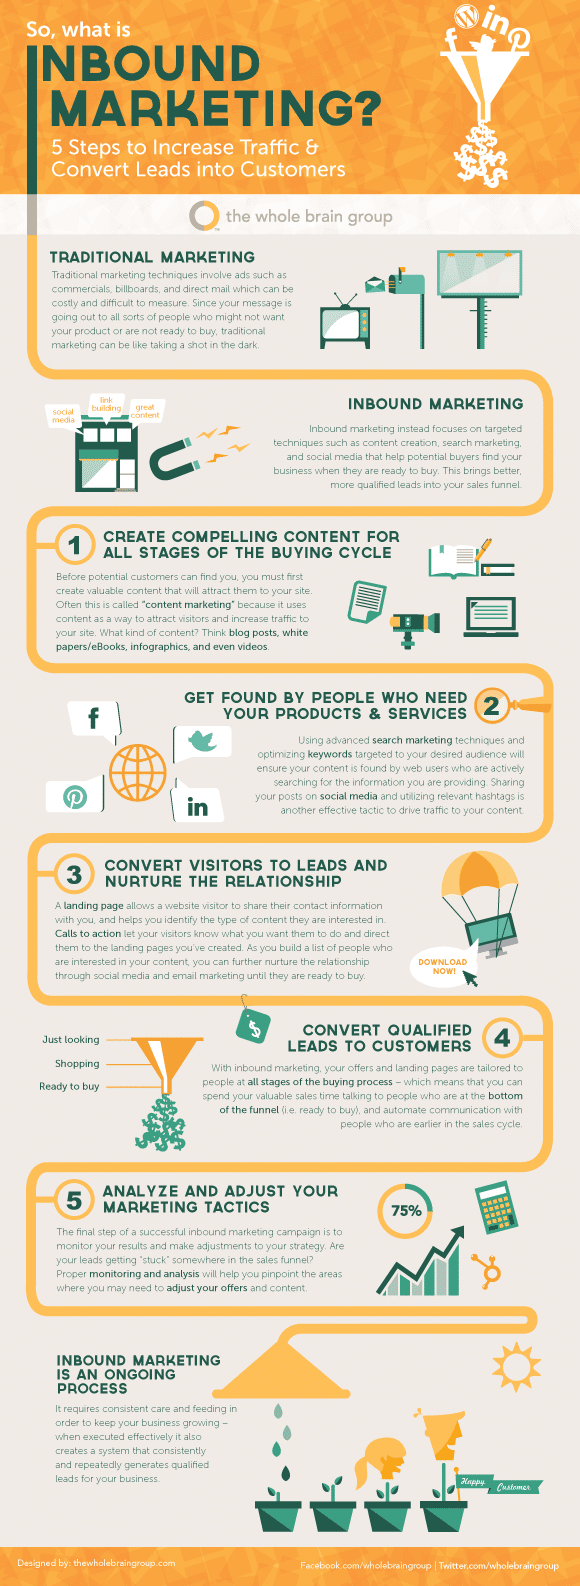 Inbound Marketing Infographic: 5 Steps for Success